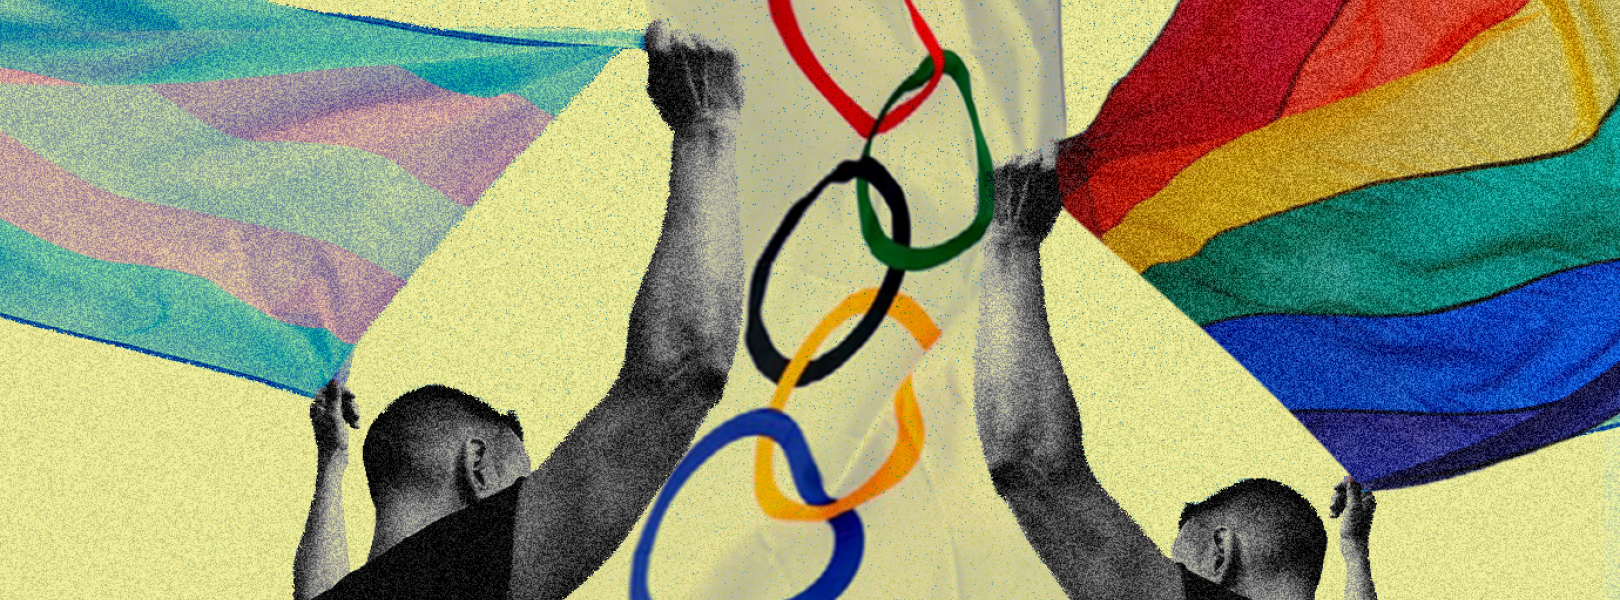 Two people holding olympic, LGBTQ, and trans flags